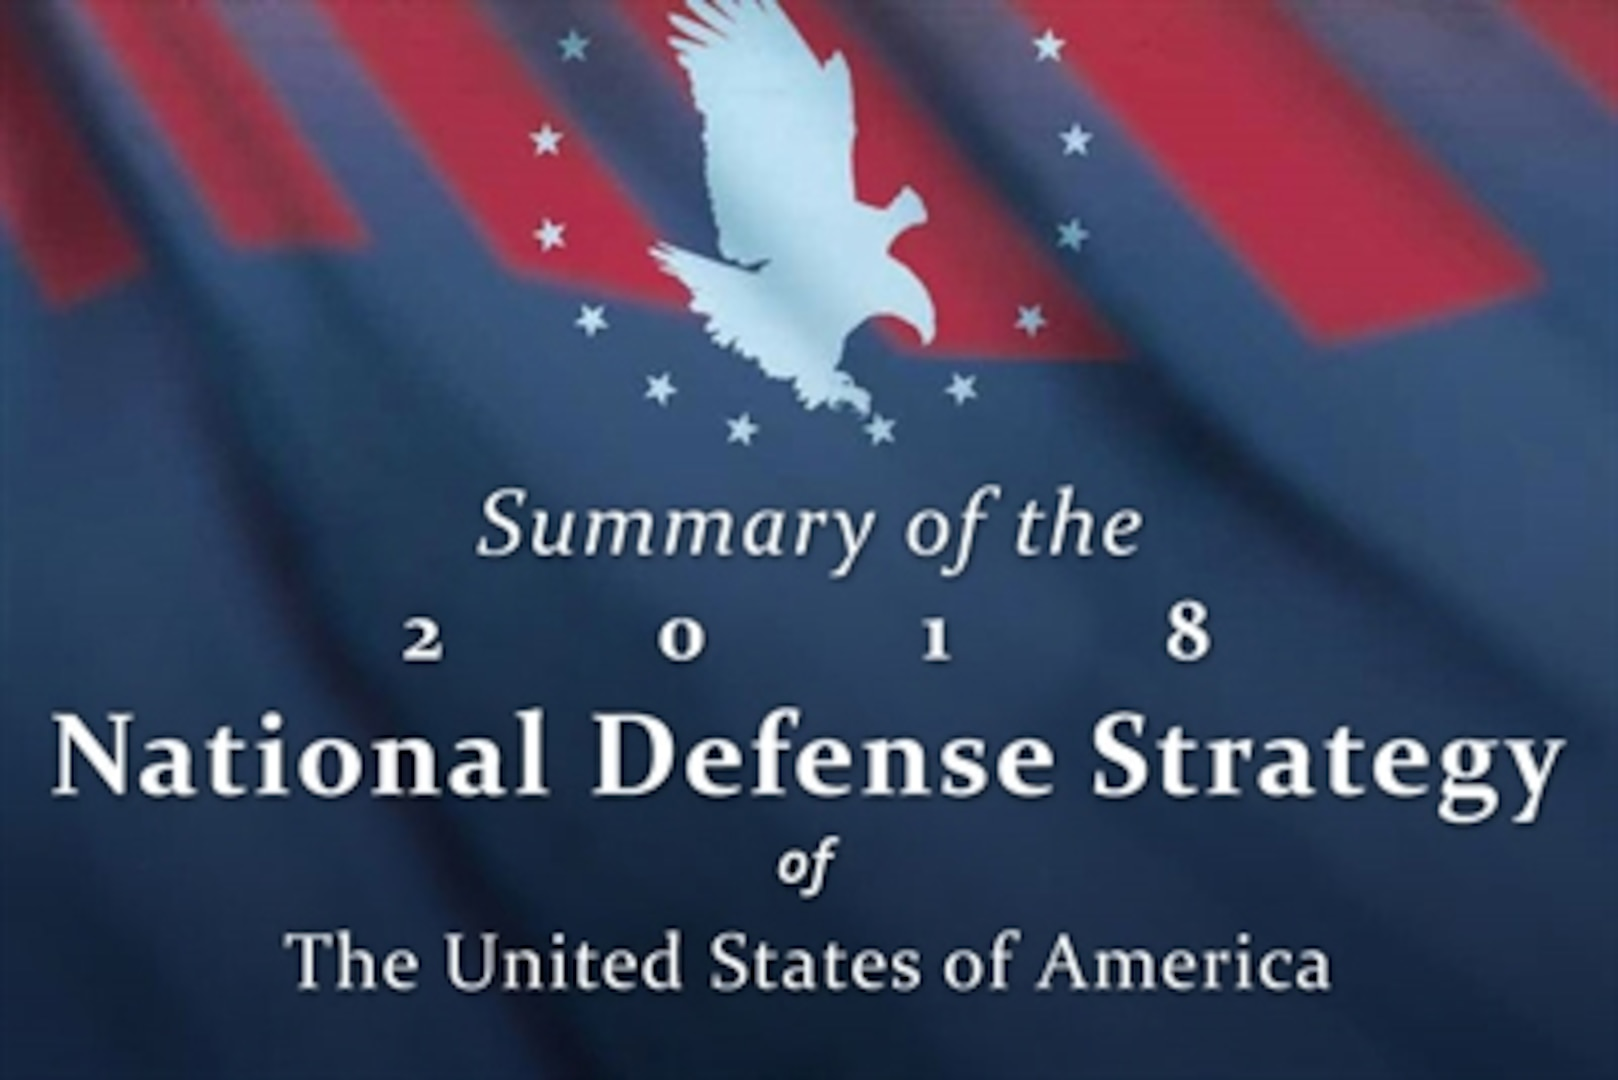 National Defense Strategy Will Rebuild Dominance, Enhance Deterrence